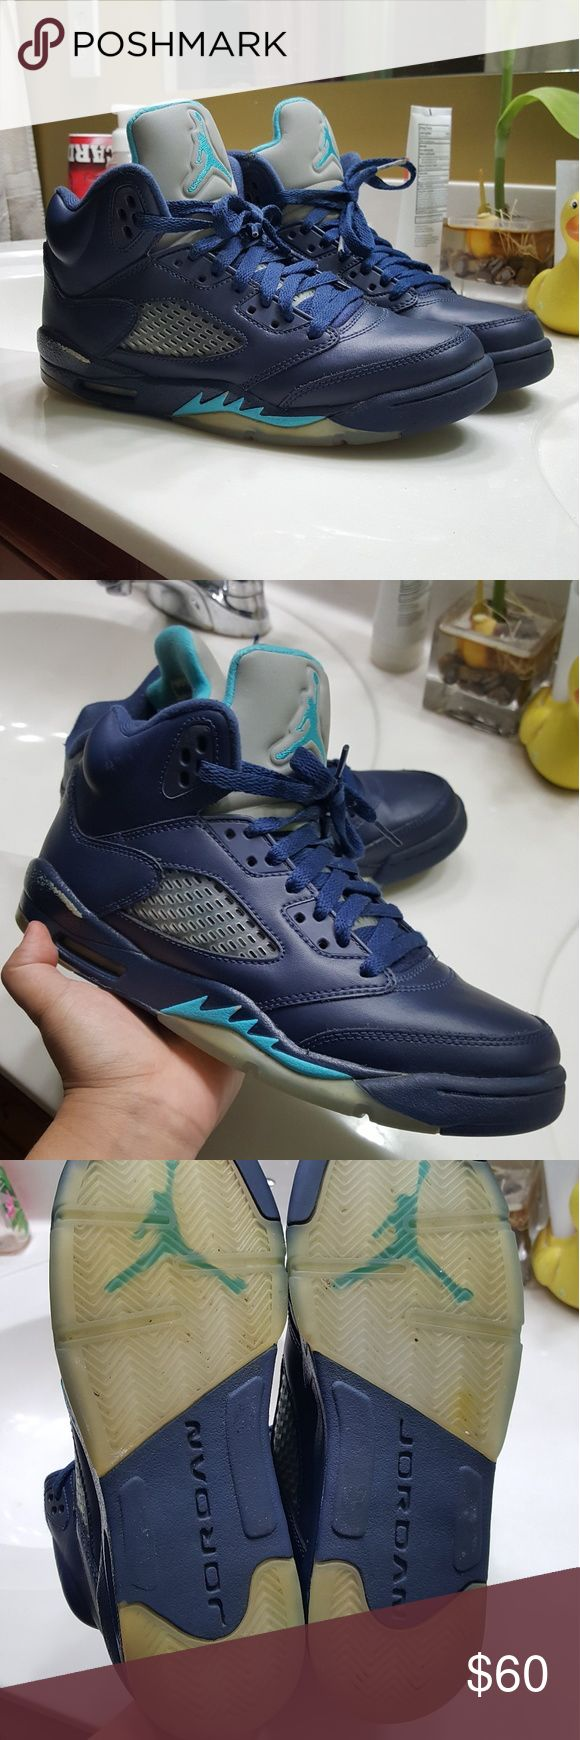 Nike air Jordan retro 5 hornets 100% authentic and size 6y.  The shoe is in amazing condition. The only flaw is a that a little paint was rubbed off on one of the shoes, but thats all. If any you have questions, please message me.   I try to ship as fast as the next day. However, it might take a bit because I schedule a USPS pick up so that packages are picked up safely. But is Usually done the day of purchase.  Lebron kd kyrie kobe 1 2 3 4 5 6 7 8 9 10 11 12 Air Jordan Shoes Sneakers